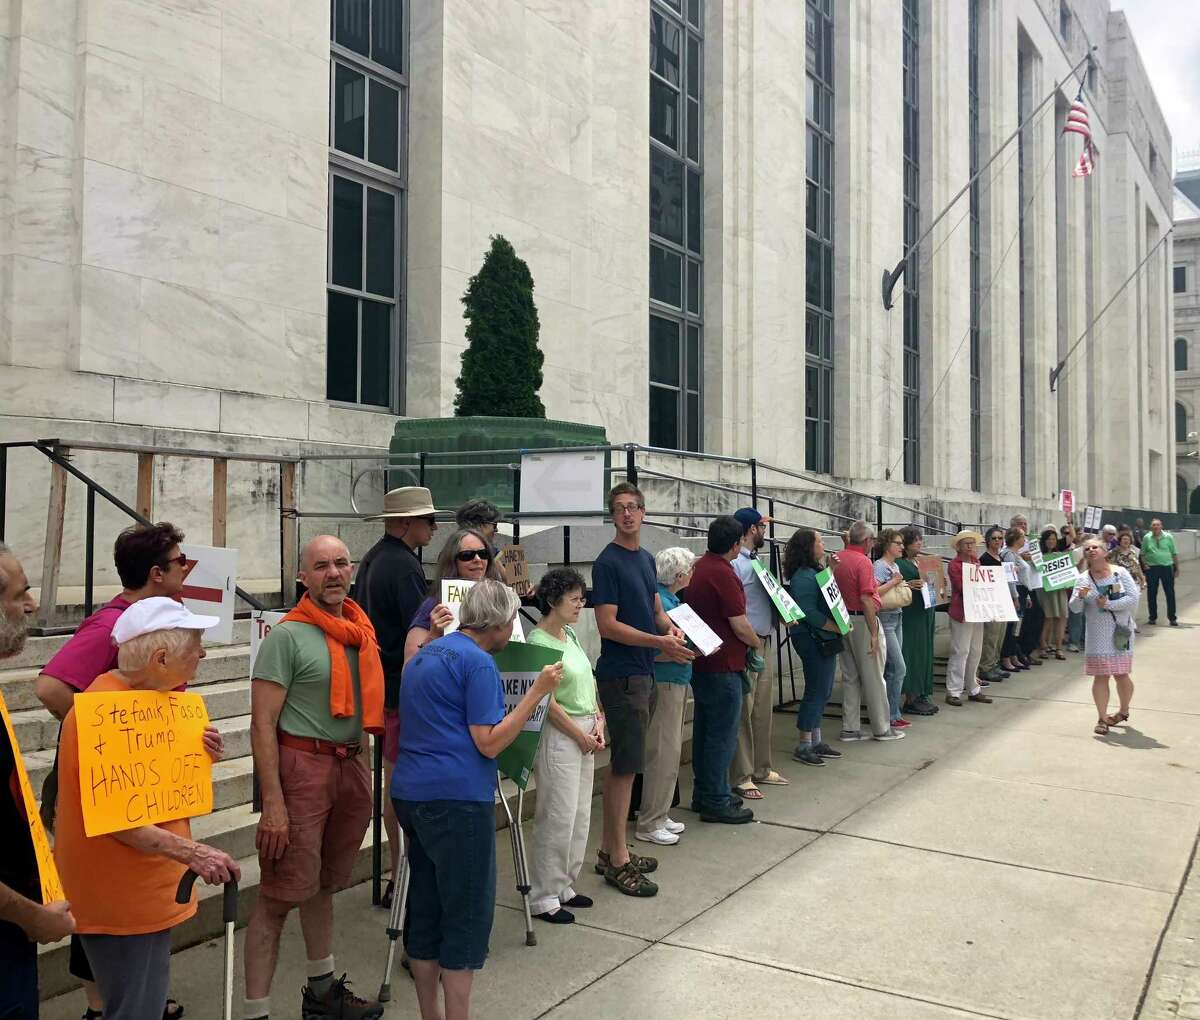 At least two dozen residents gathered in front of the Federal Courthouse in downtown Albany, N.Y. Friday, June 1, 2018 to protest the federal government's handling of and policies regarding immigrant children. (Massarah Mikati / Times Union)